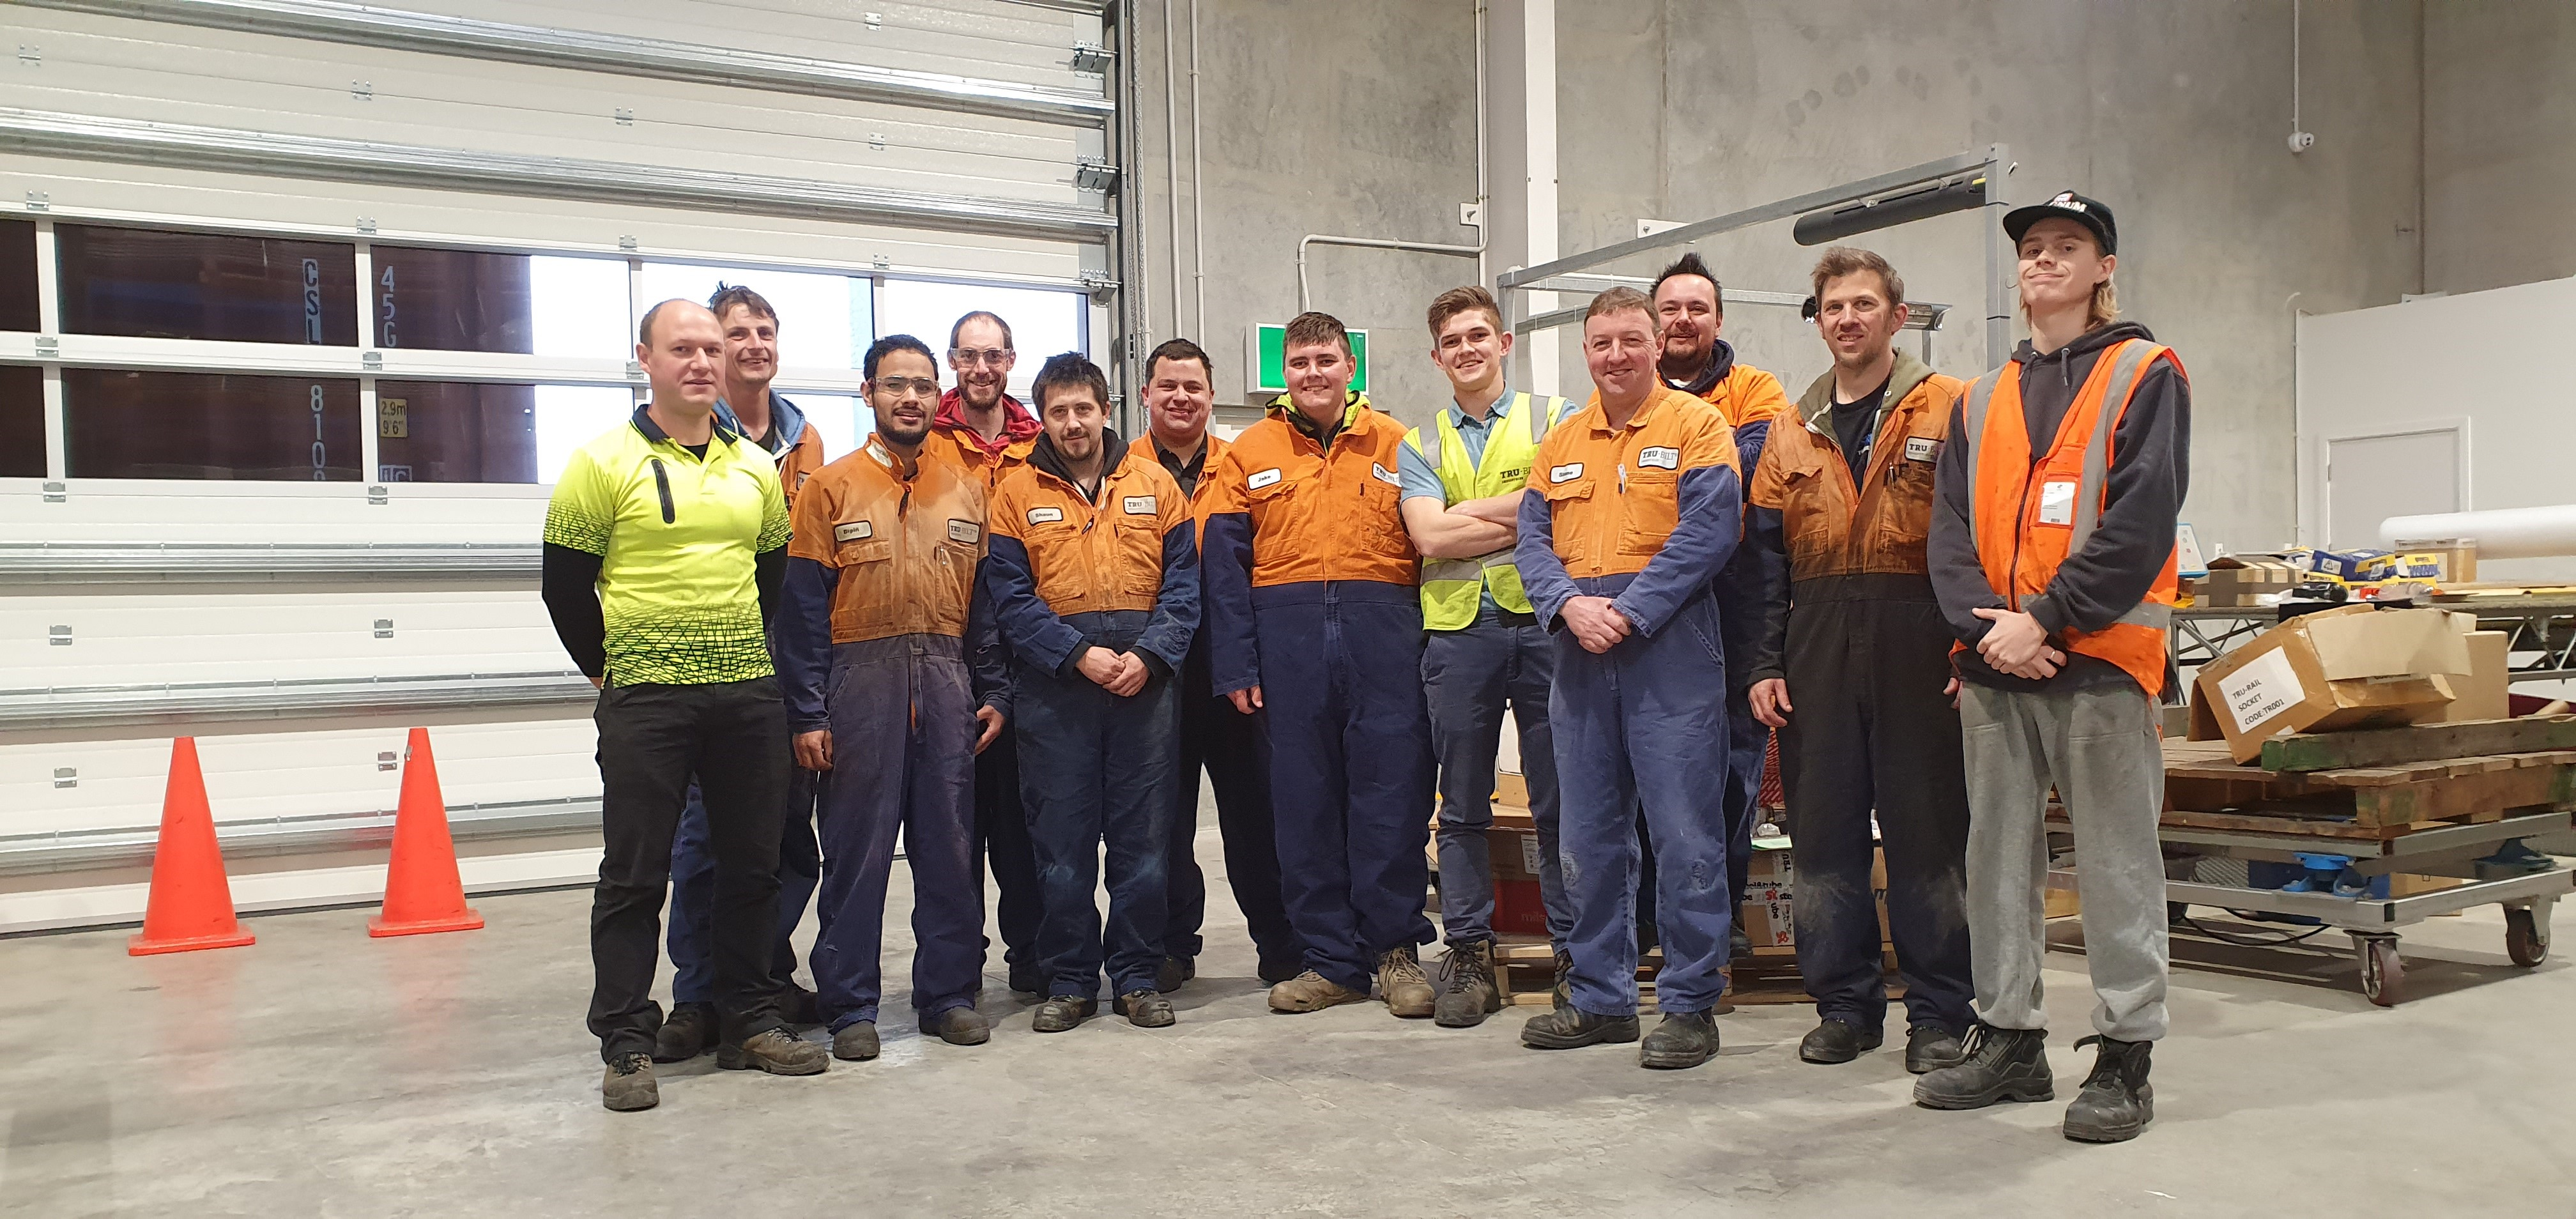 Jake Miller (pictured in centre) works with a IDEA Services vocational support worker to make a success of his job with Tru-Bilt Industries.